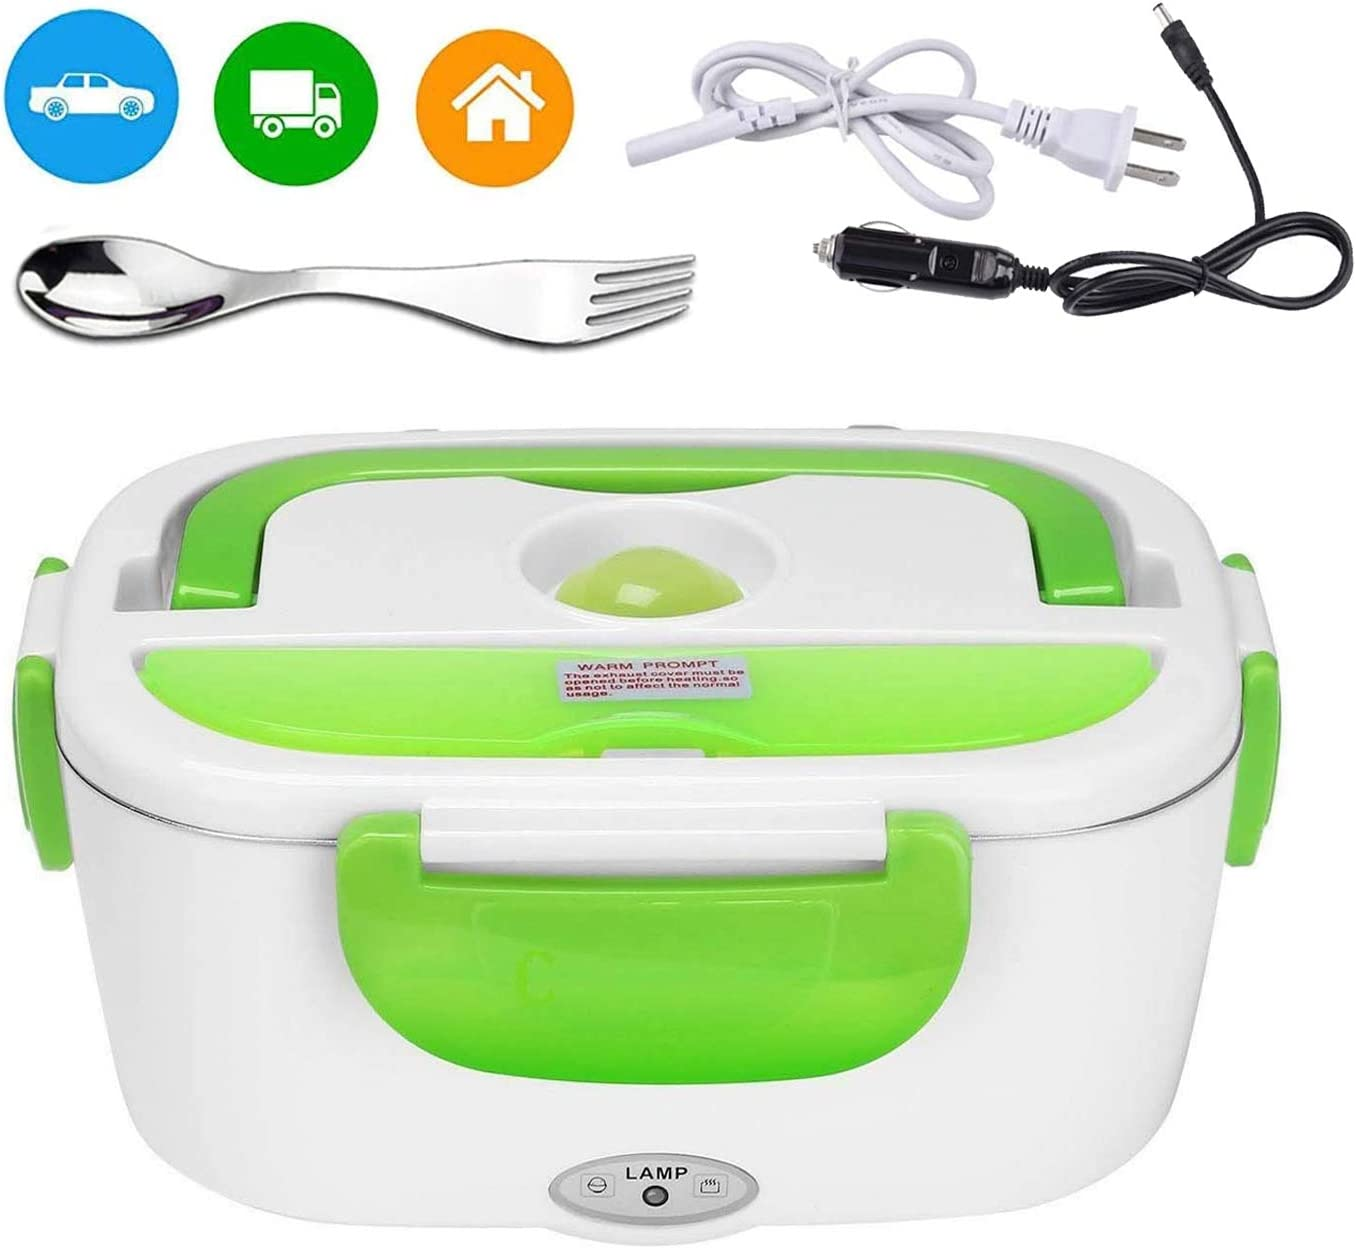 Electric Lunch Box for Car and Home 110V & 12V Removable Stainless Steel Portable Food Grade Material Warmer Heater - with 2 in 1 Fork & Spoon (green)